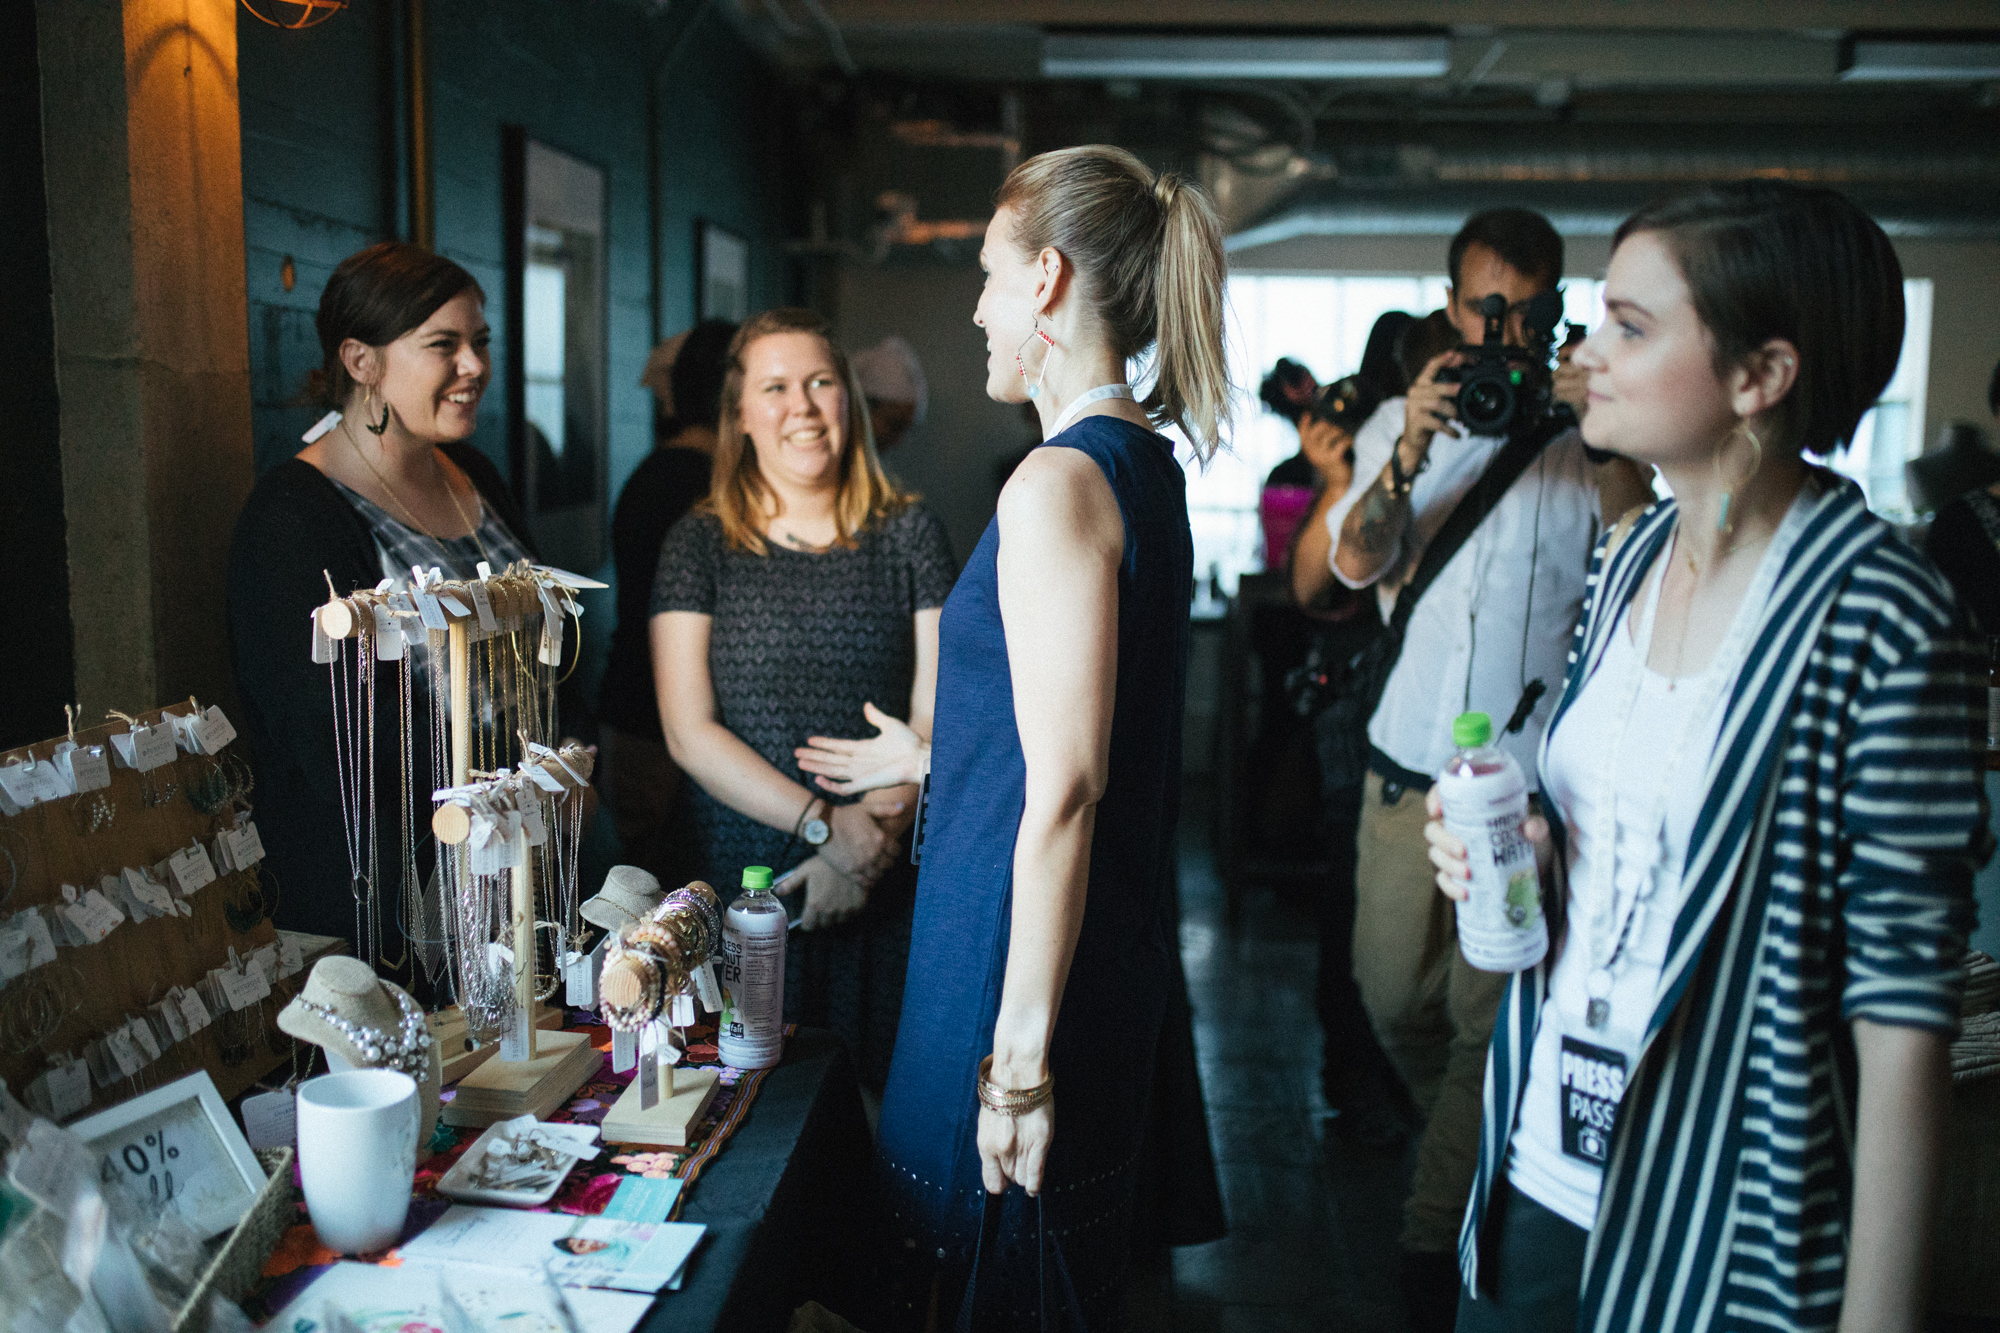 Ashley C and Jessi B, from Purpose Jewelry DISCUSS fashion and freedom with Heather & jennifer. Photo:  CECILY BREEDING